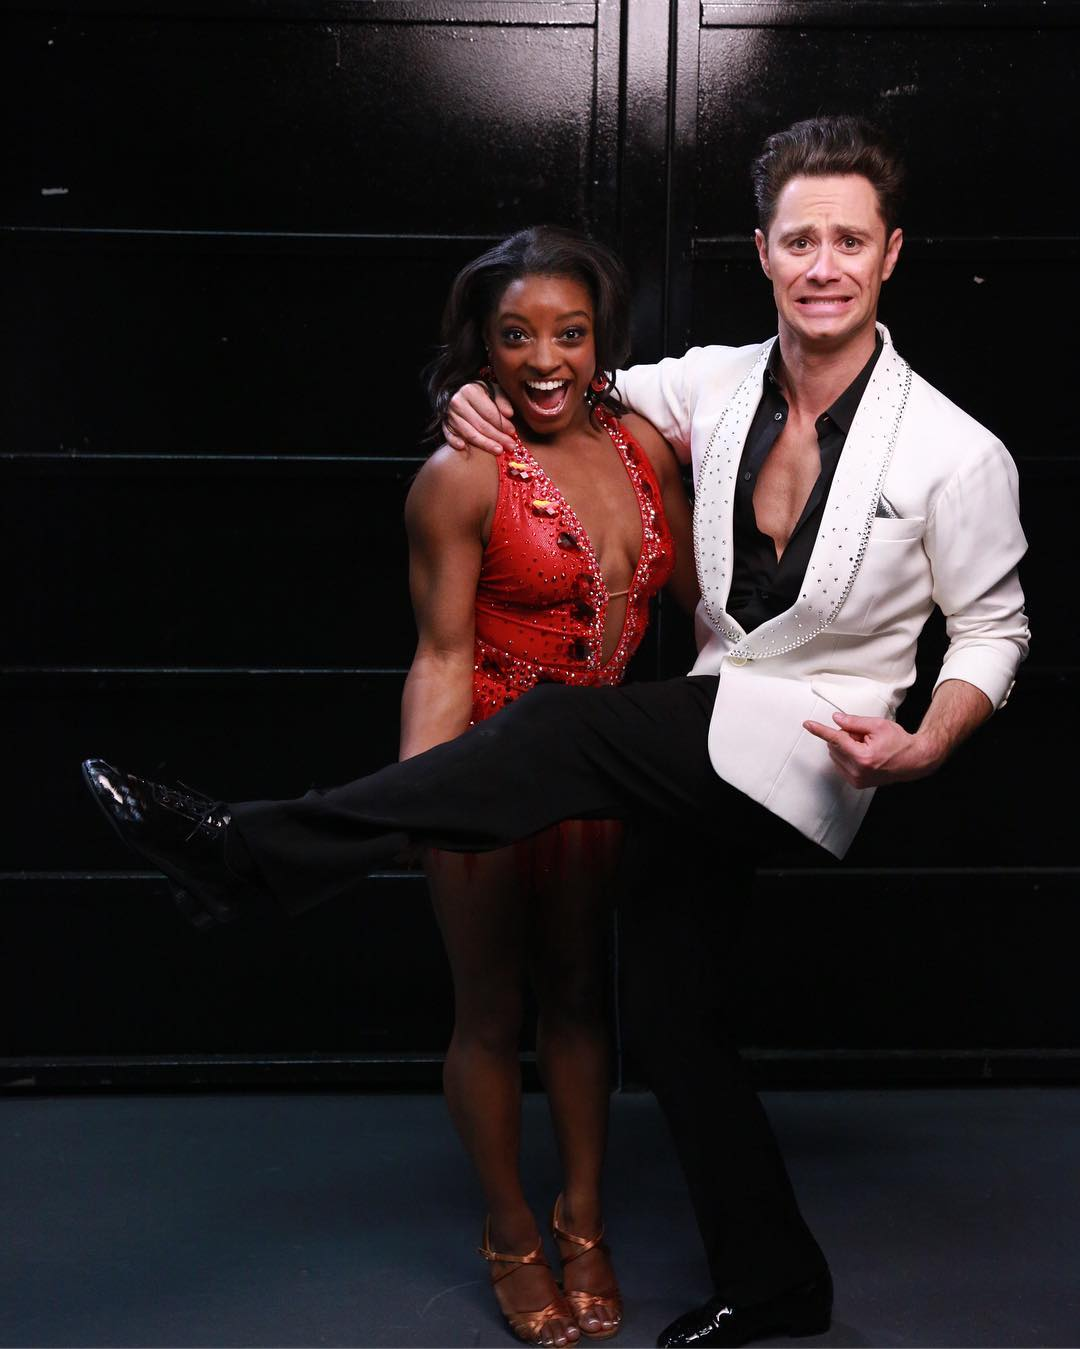 Sasha Farber and Simone Biles